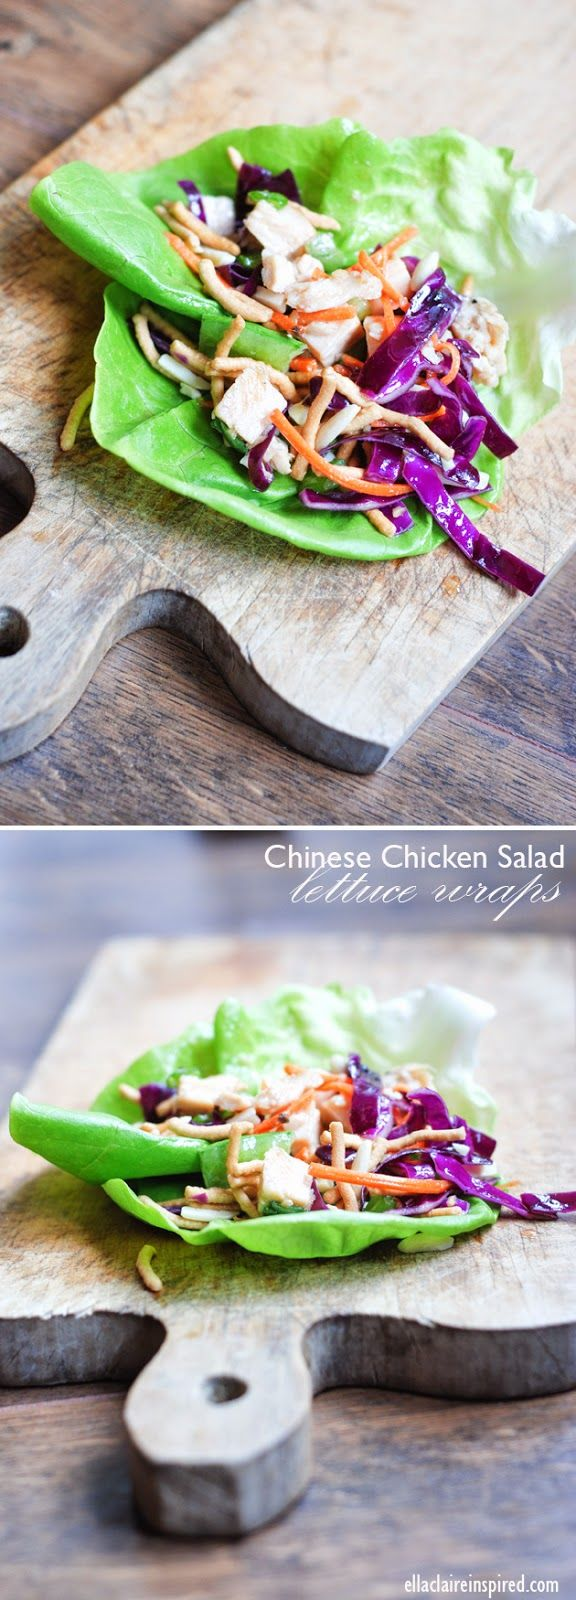 Light and Delicious Chinese Chicken Salad Lettuce Wraps | Homemade Asian DressingLettuce Wraps, Clear Ella, Homemade Asian, Chicken Salads, Asian Dresses, Healthy Eating, Salad Lettuce, Delicious Chinese, Chinese Chicken Salad